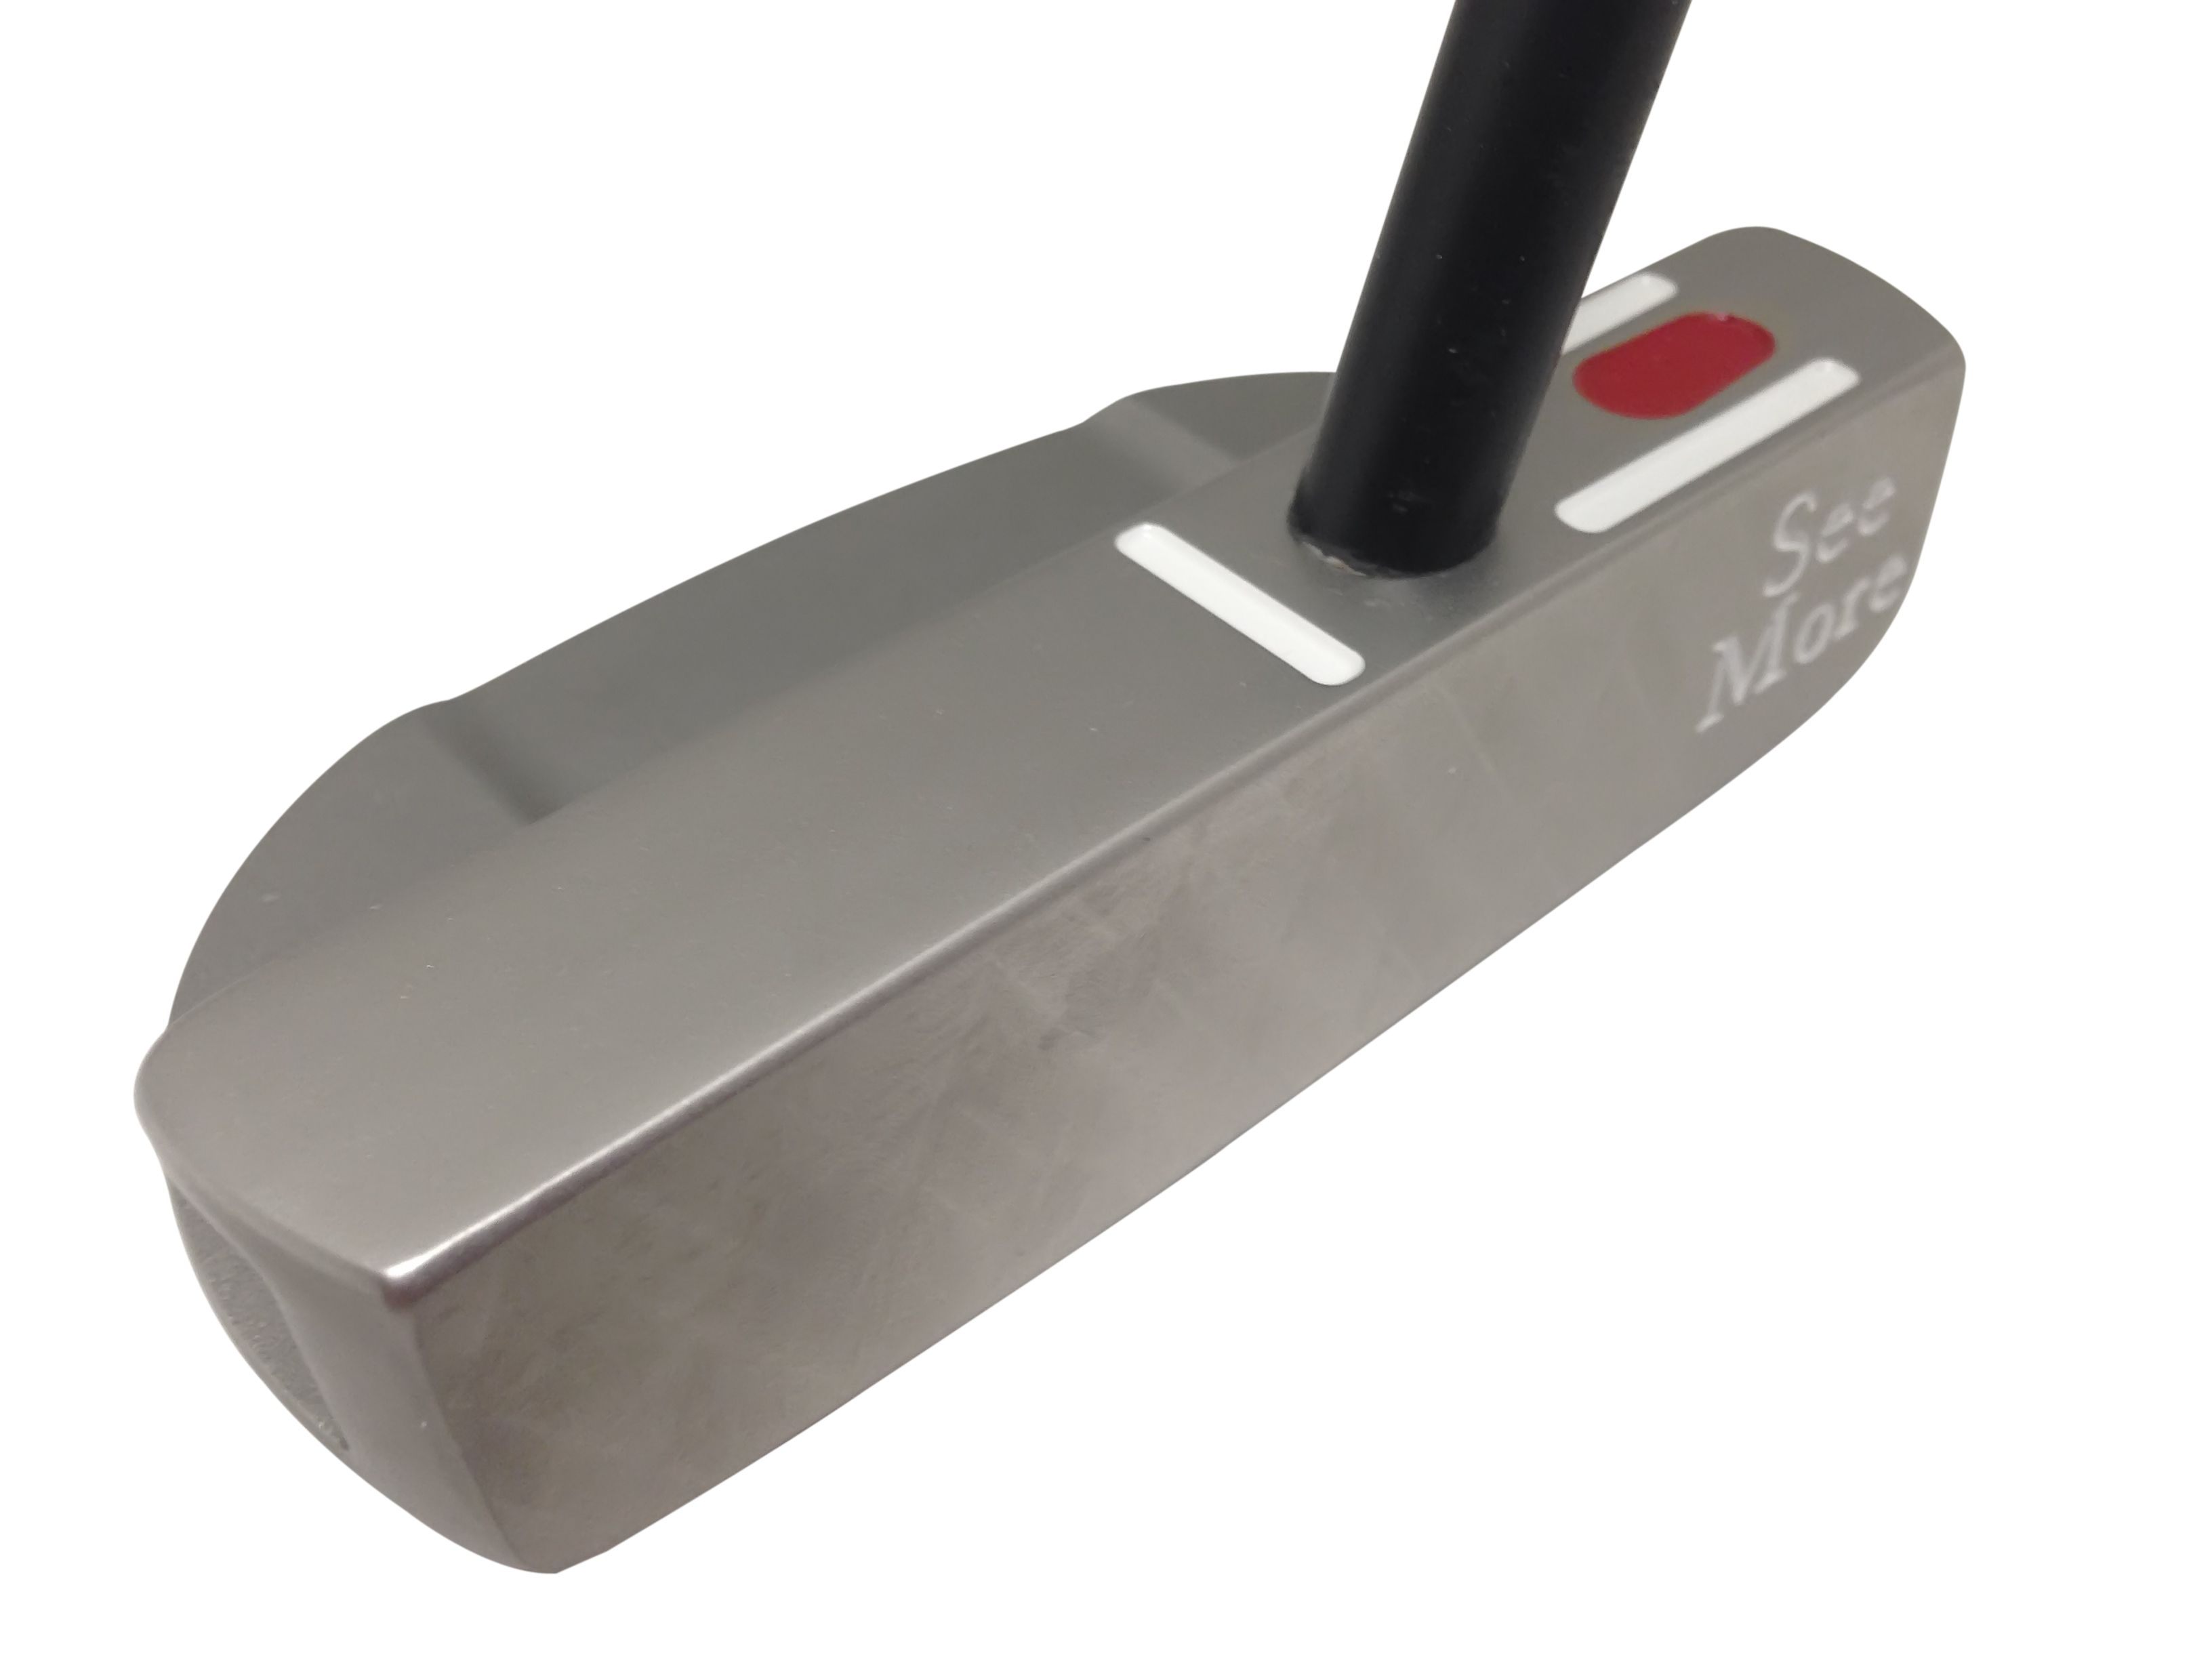 The Precision Tour Milled (PTM3) has been a putter years in the making, a new milled version of original FGP.  Precision Tour Milled (PTM) RifleScope technology where SeeMore starts with a USA stainless steel precision cast head then uses CNC precision milling machines to mill the face, sole, bore hole and RST lines in perfect relation to each other.